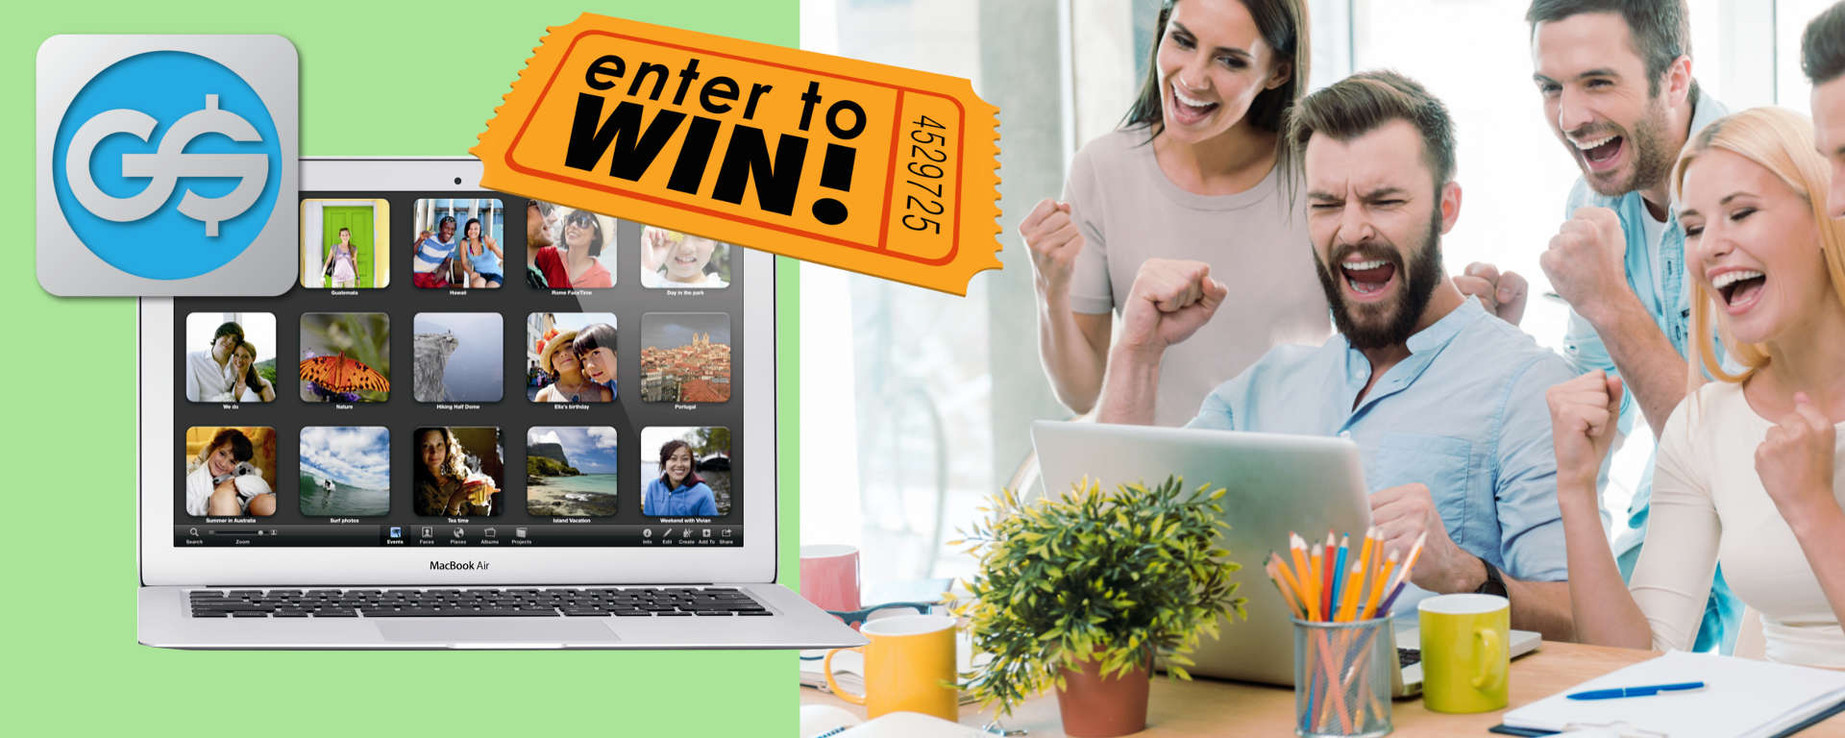 You could win a 13-inch Macbook Air just by entering the GainSaver Sweepstakes for August October 2017